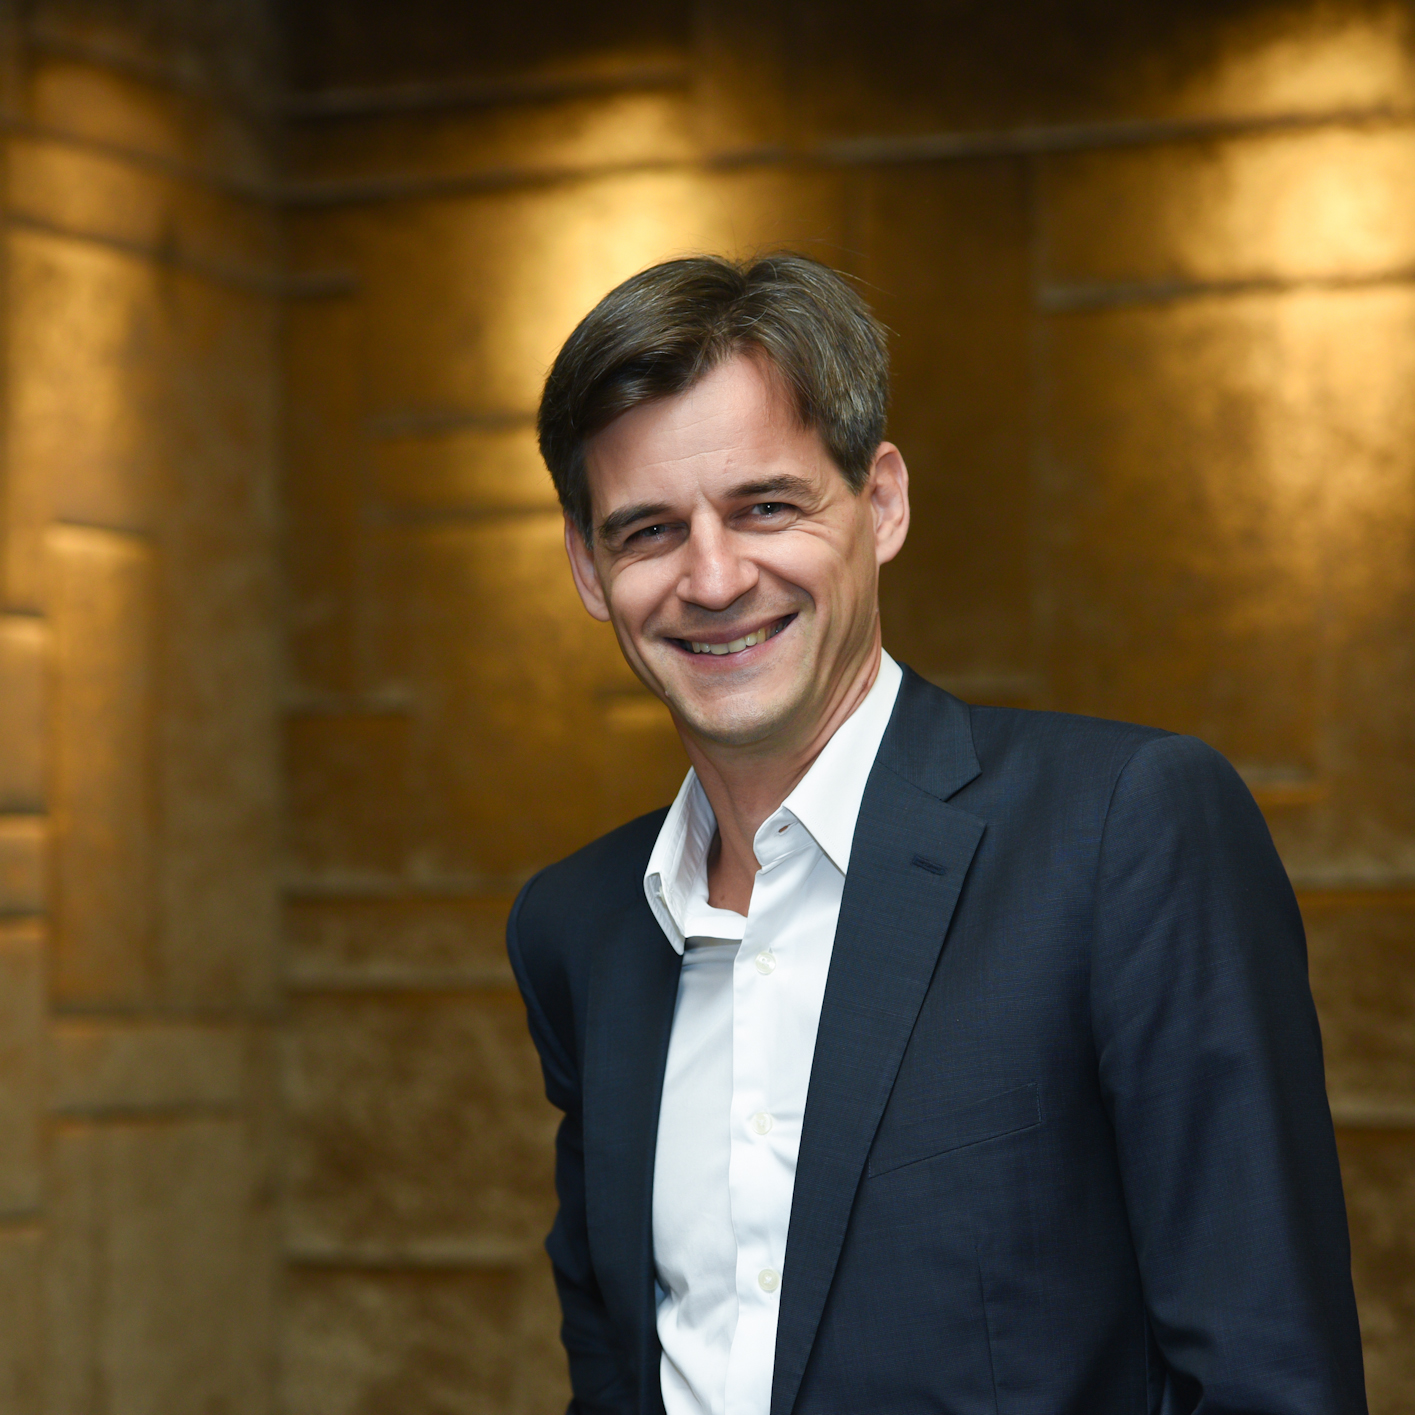 Mr Guilhem Vincens, Head of Change and Innovation - APAC at ABN AMRO Bank N.V